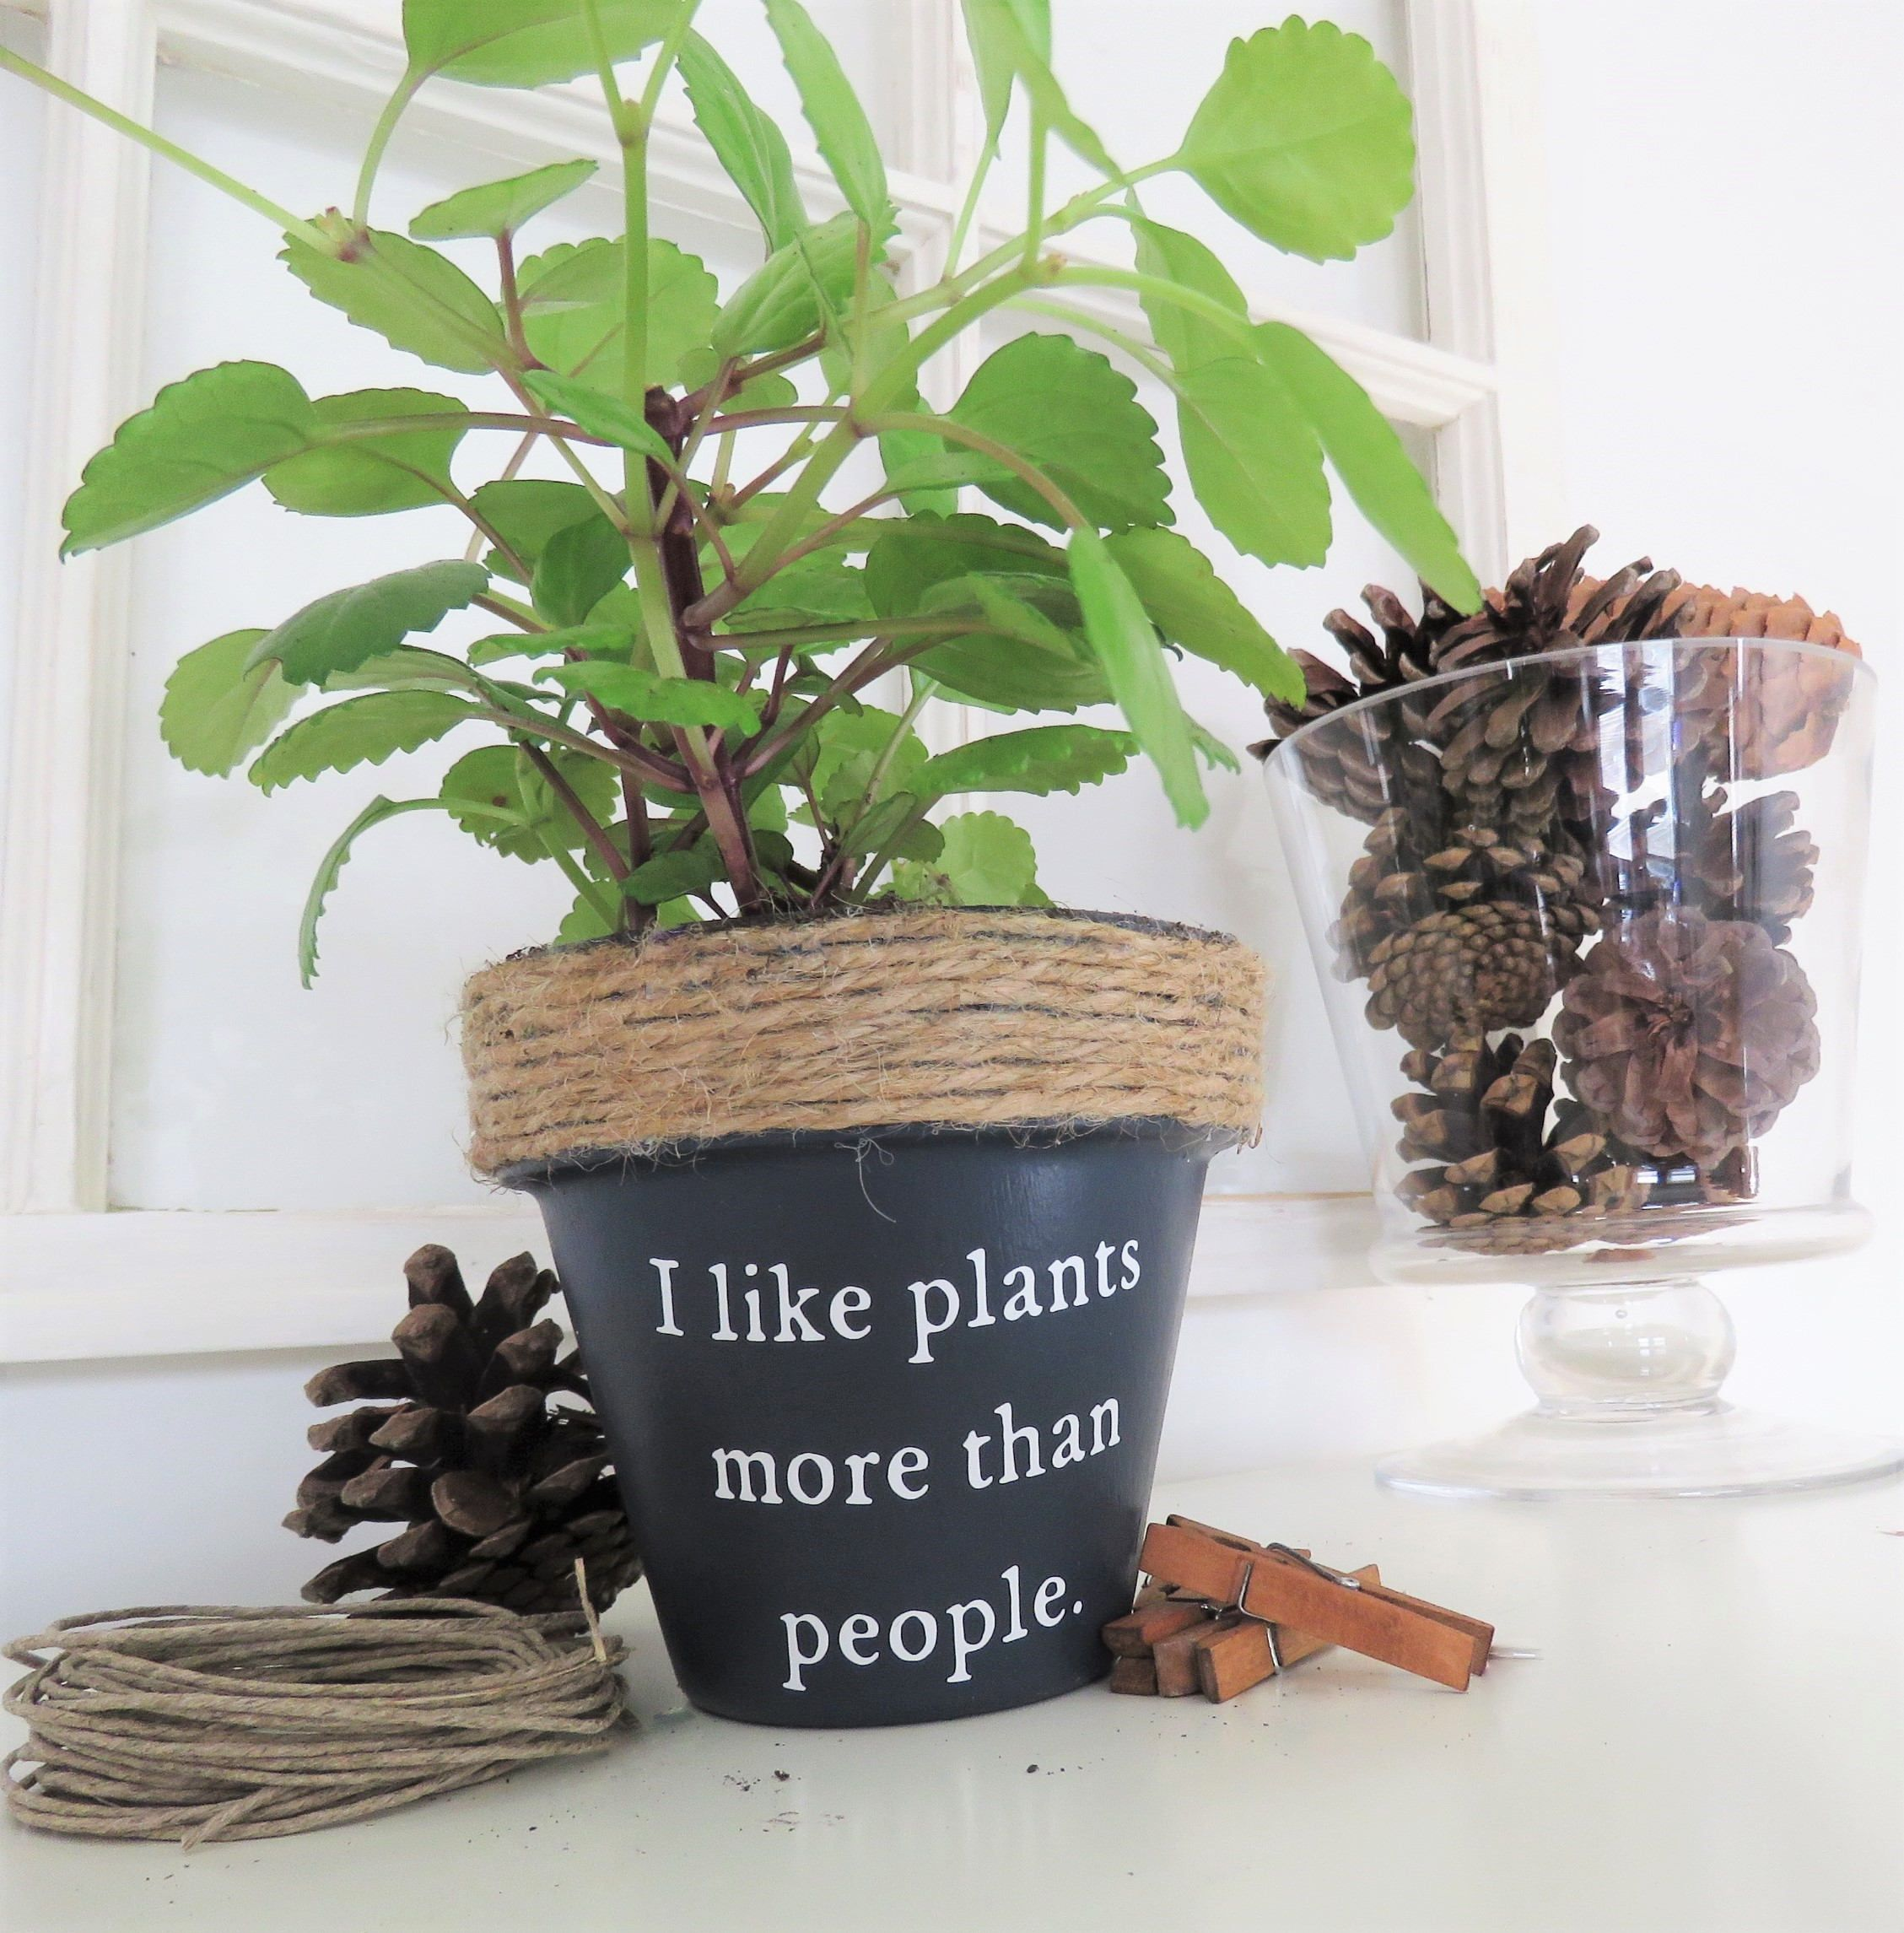 I Like Plants More Than People Funny Plant Pot Funny Plant Pun Potter Succulent Planter Indoor Planter Funny